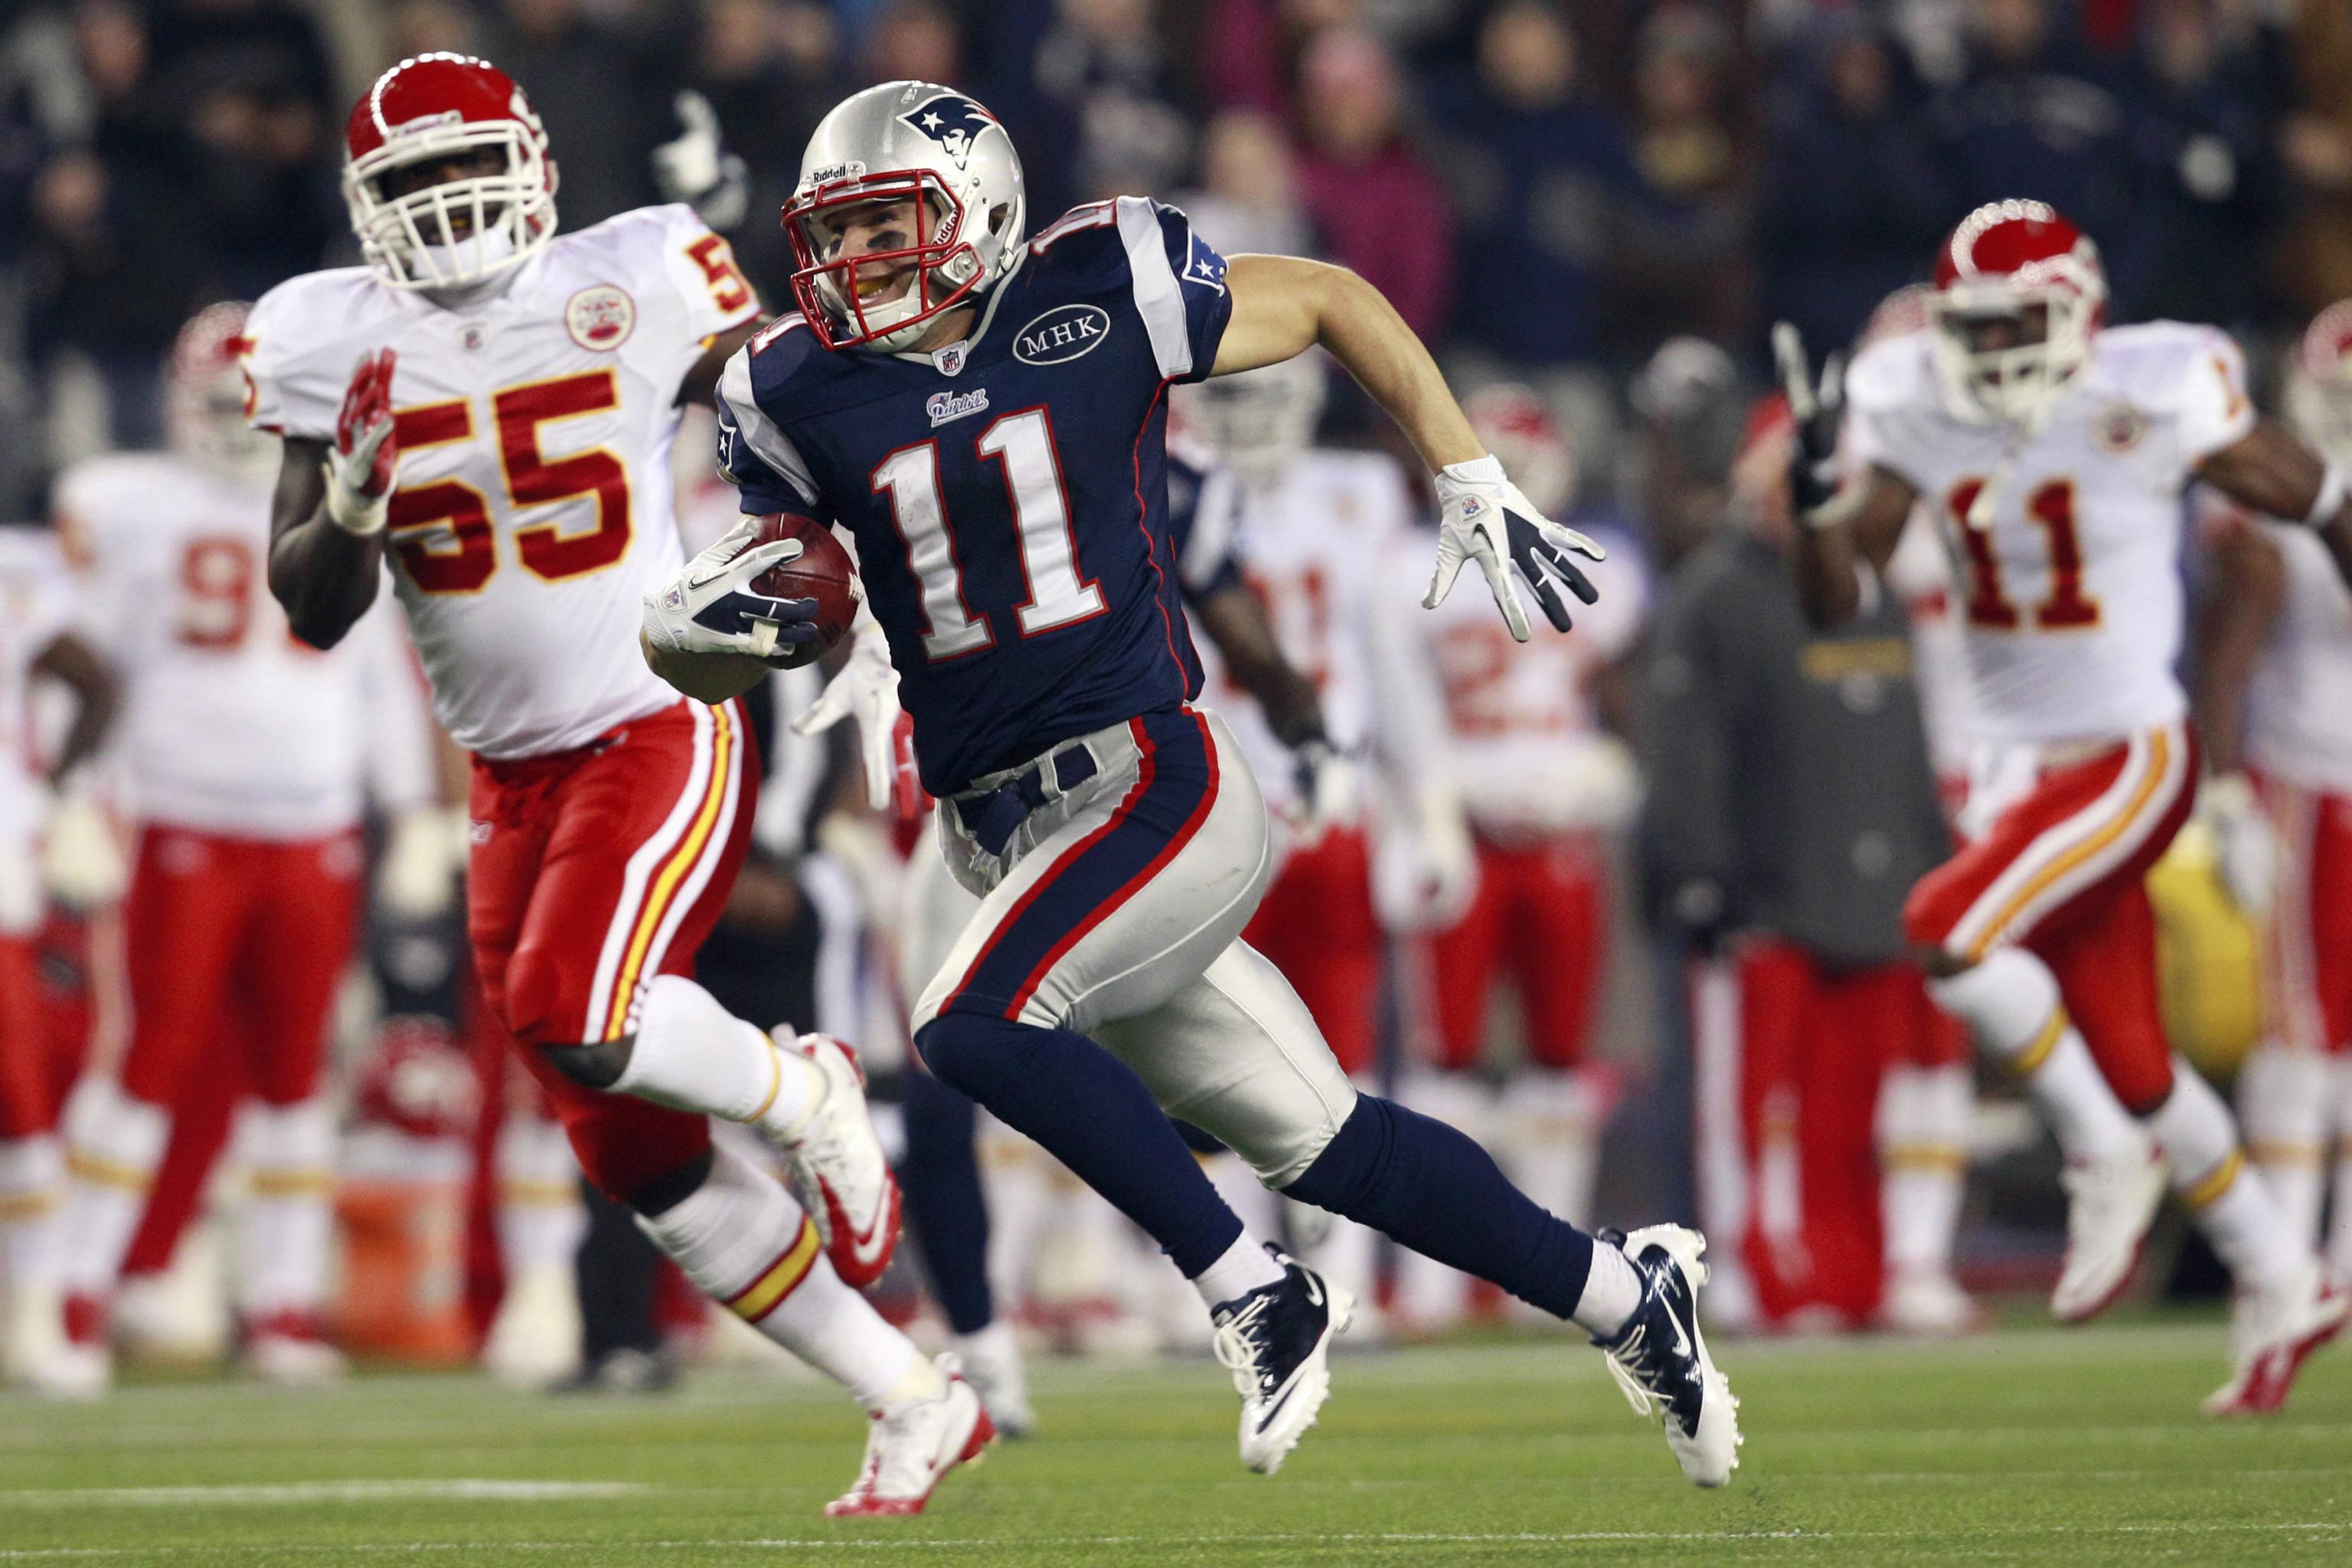 New England Patriots Vs Kansas City Chiefs Betting Odds Monday Night Pick Bleacher Report Latest News Videos And Highlights